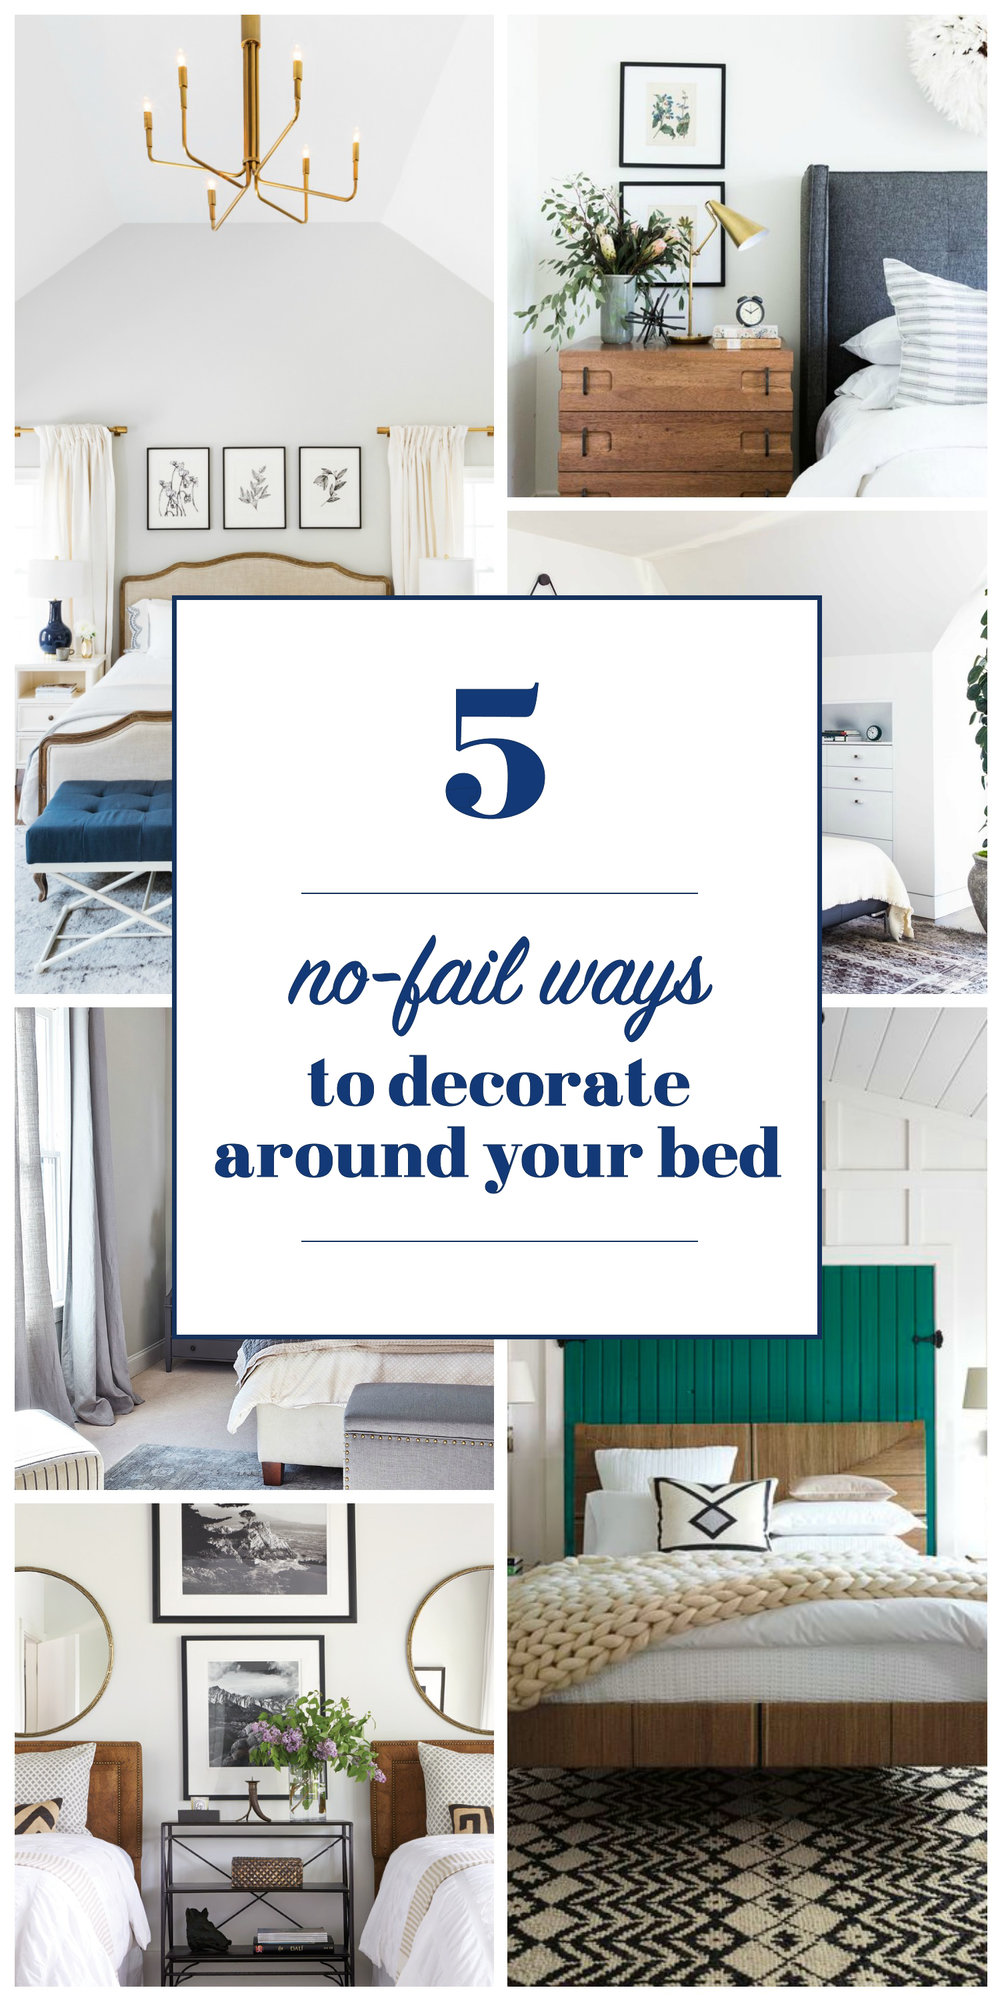 How to decorate around your bed, fill empty walls around bed, what to hang on bedroom walls